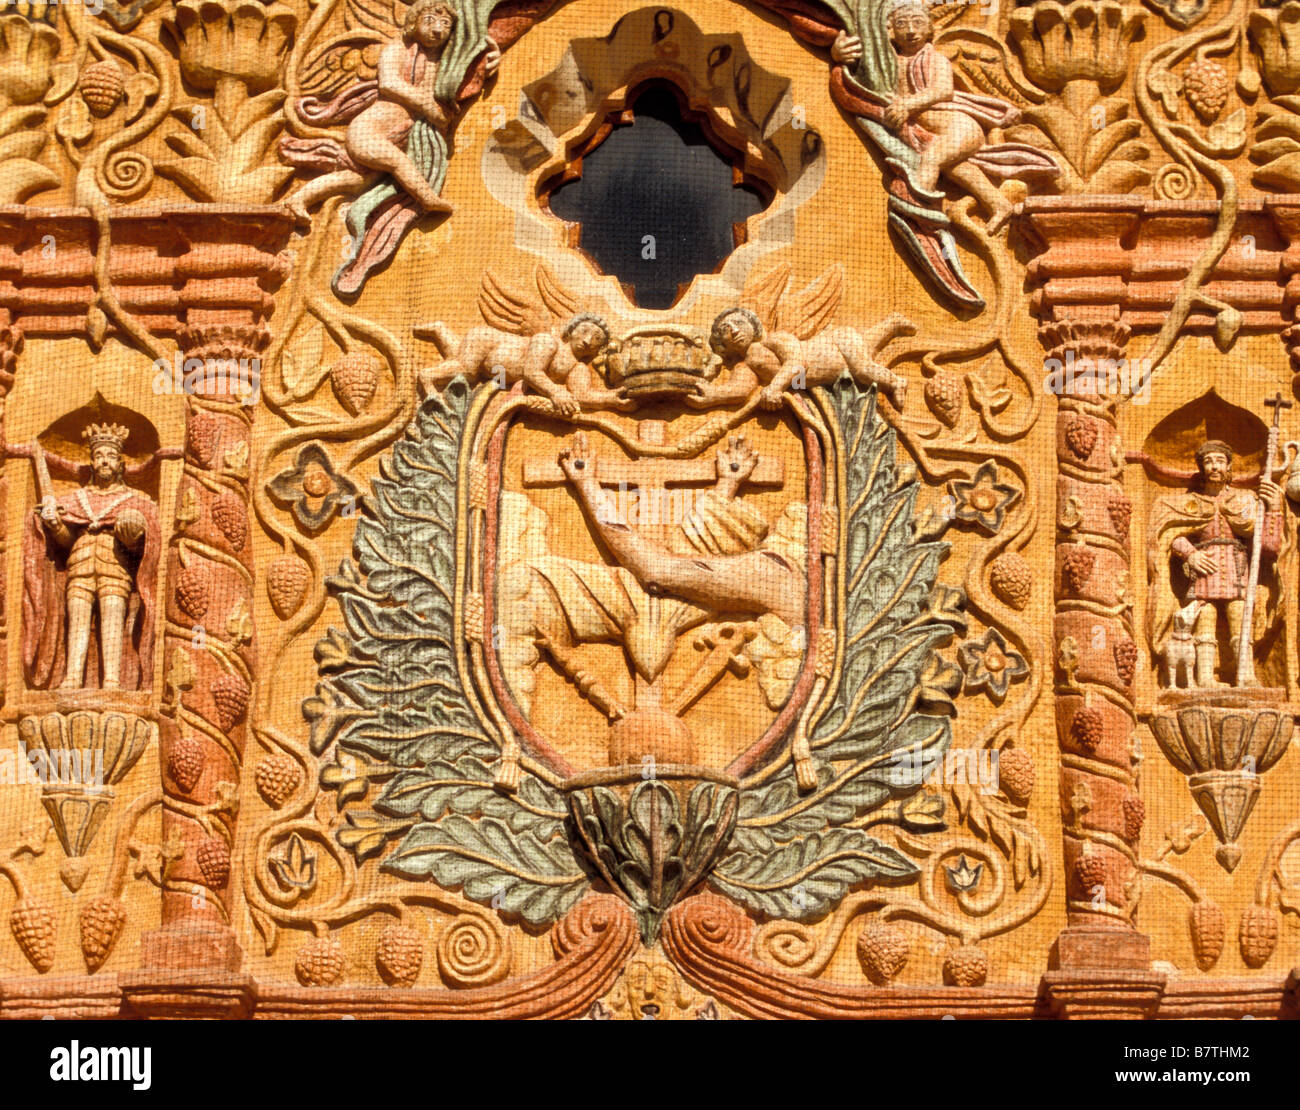 Facade of San Miguel Arcangel,completed in 1754,located in Conca Queretaro Mexico.1 of 5 missions founded by Fr - Stock Image